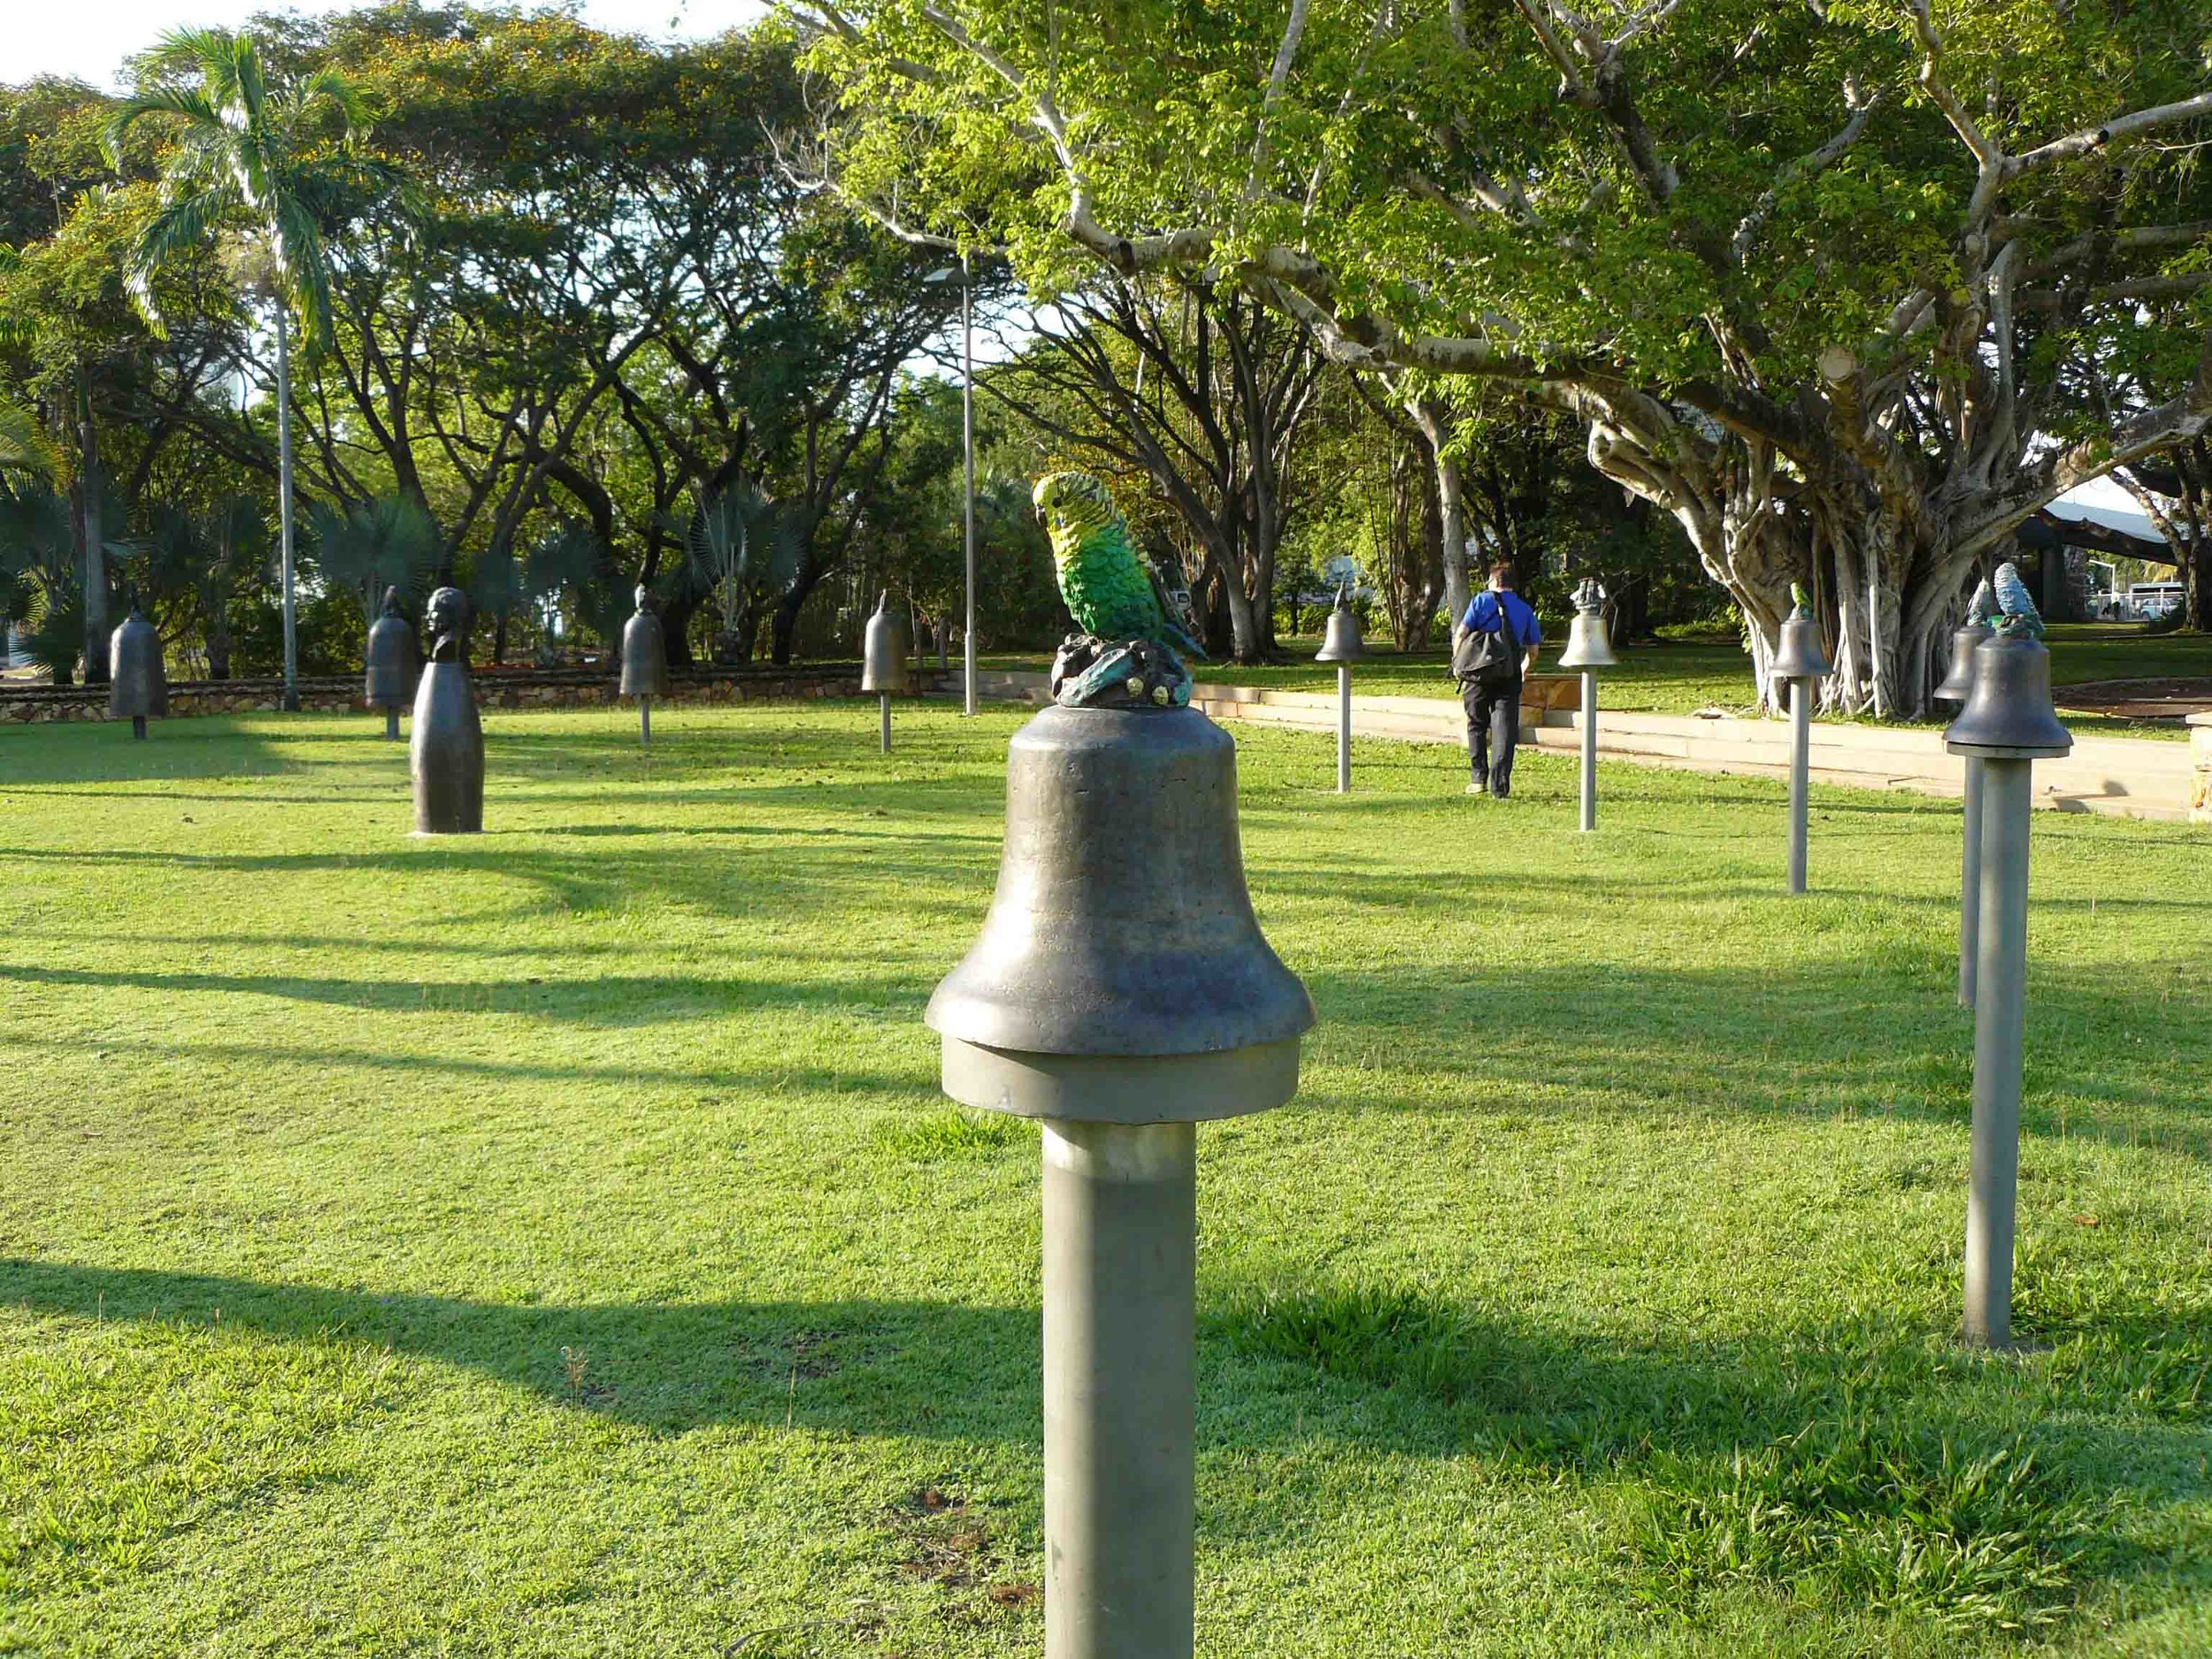 Hasell 'HMS Beagle Ship Bell Chime' Civic Square Darwin 2009